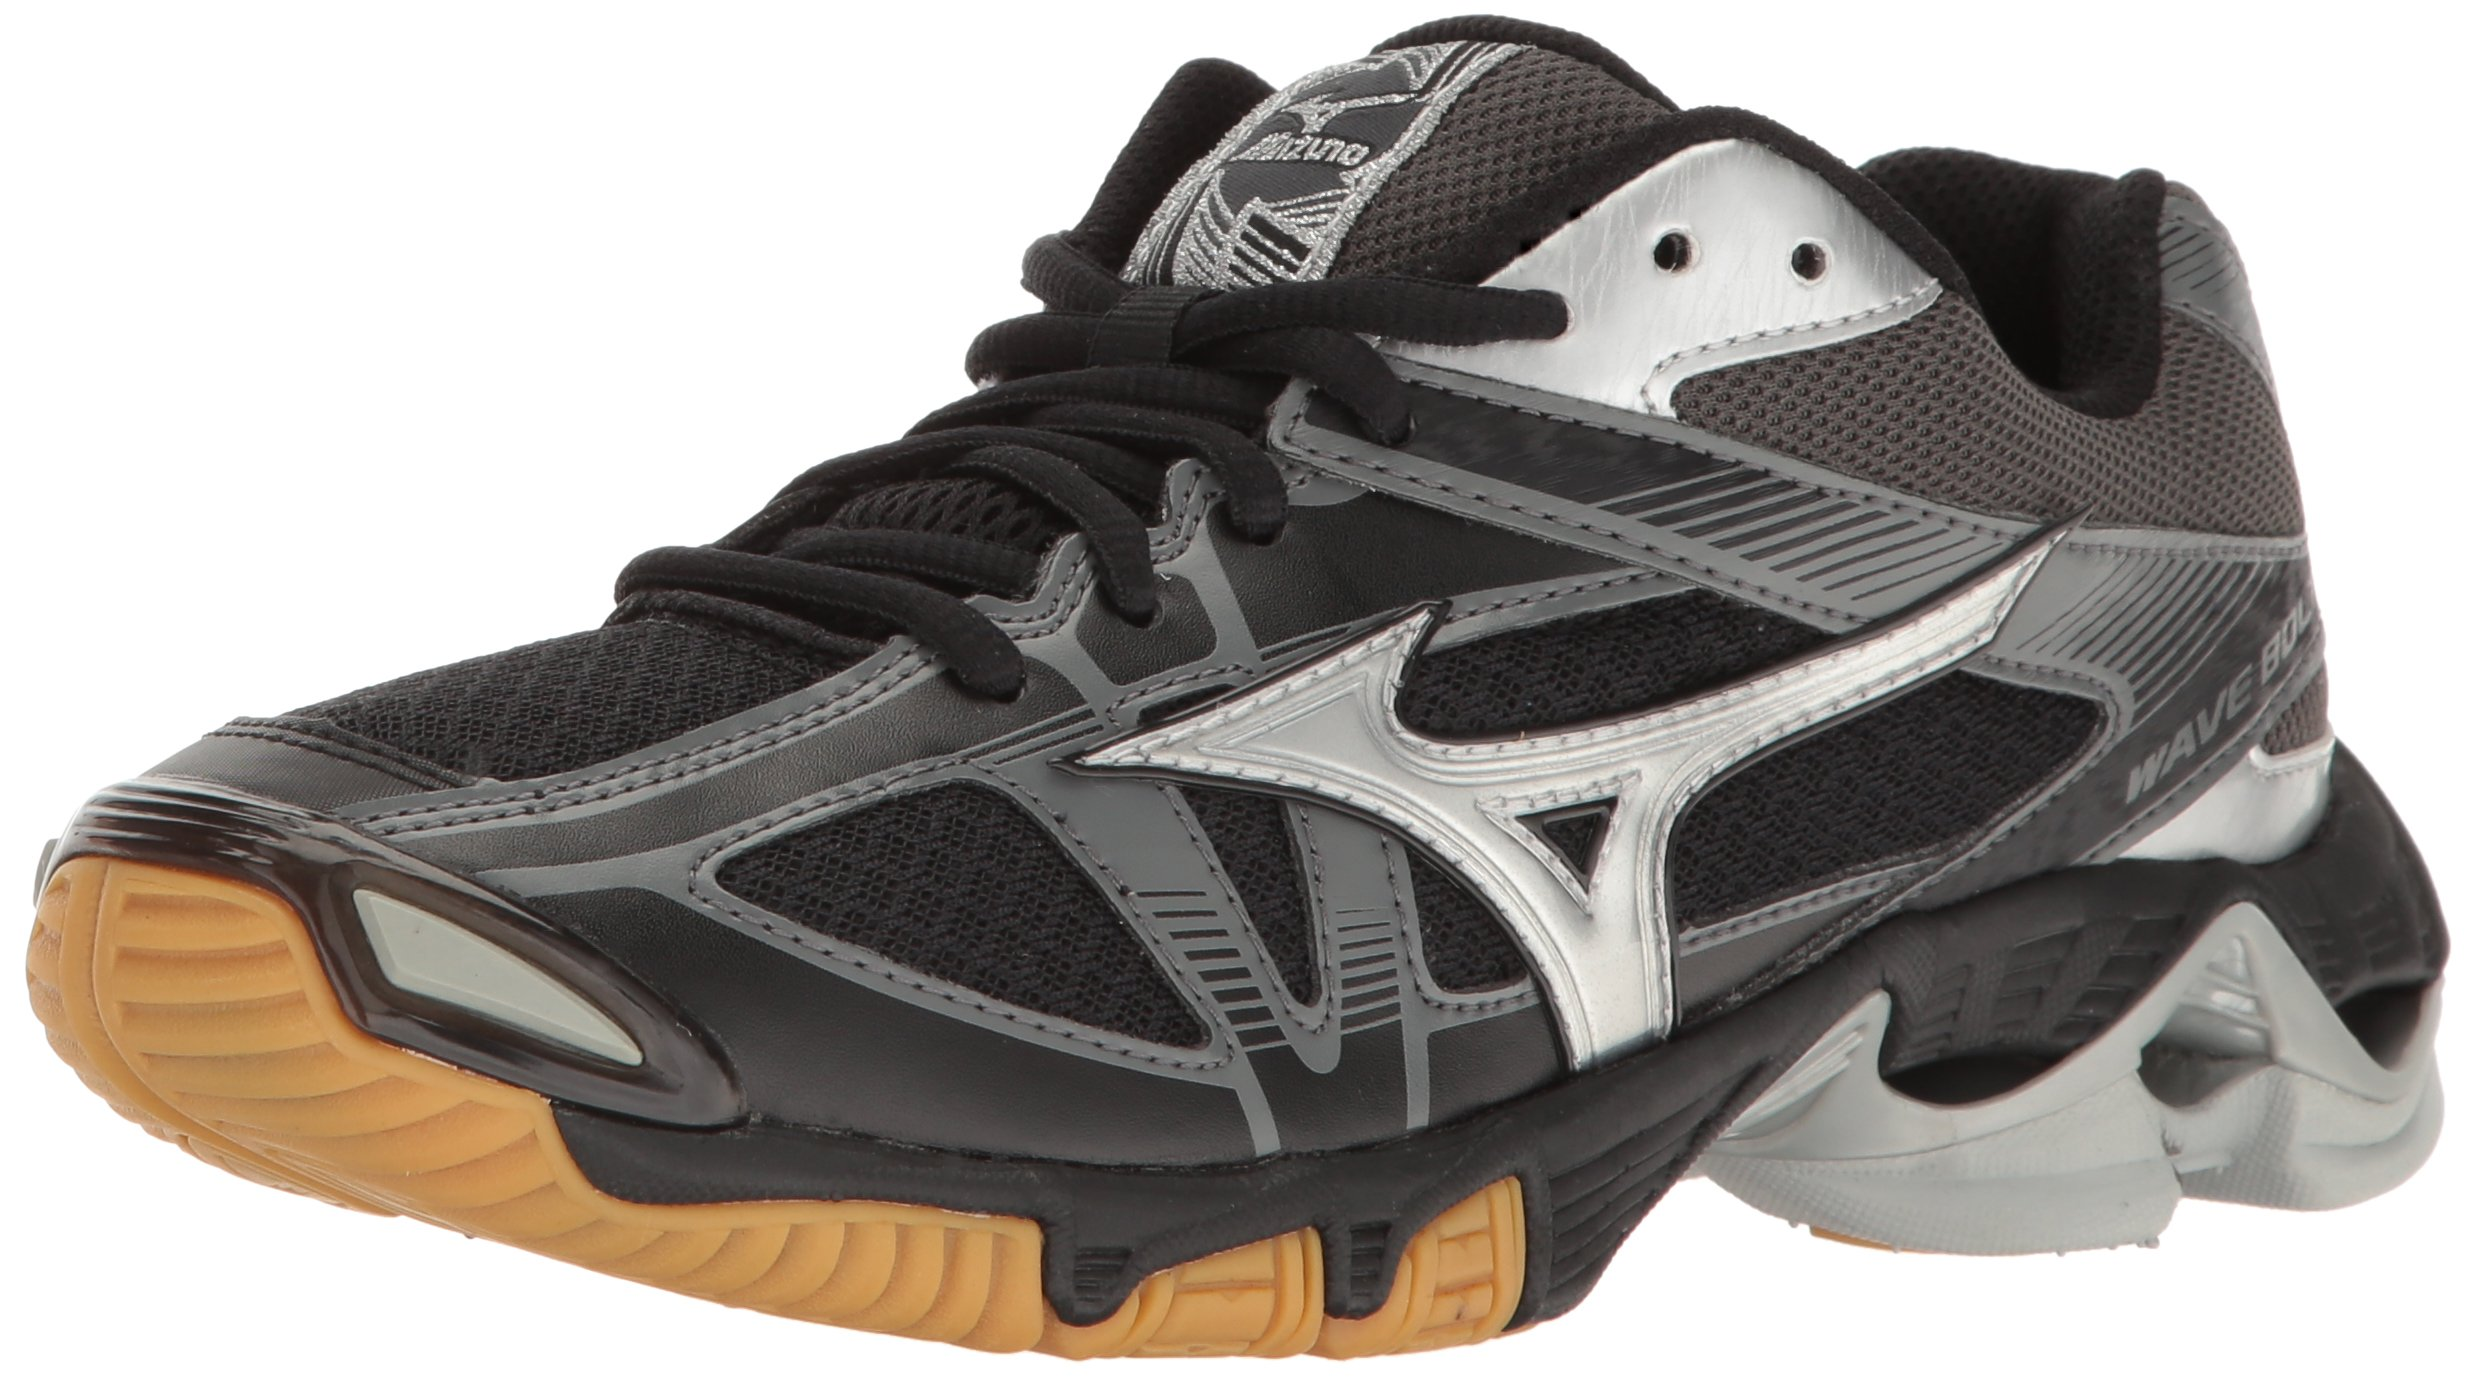 Mizuno Wave Bolt 6 Womens Volleyball Shoes, Black/Silver 9 B US